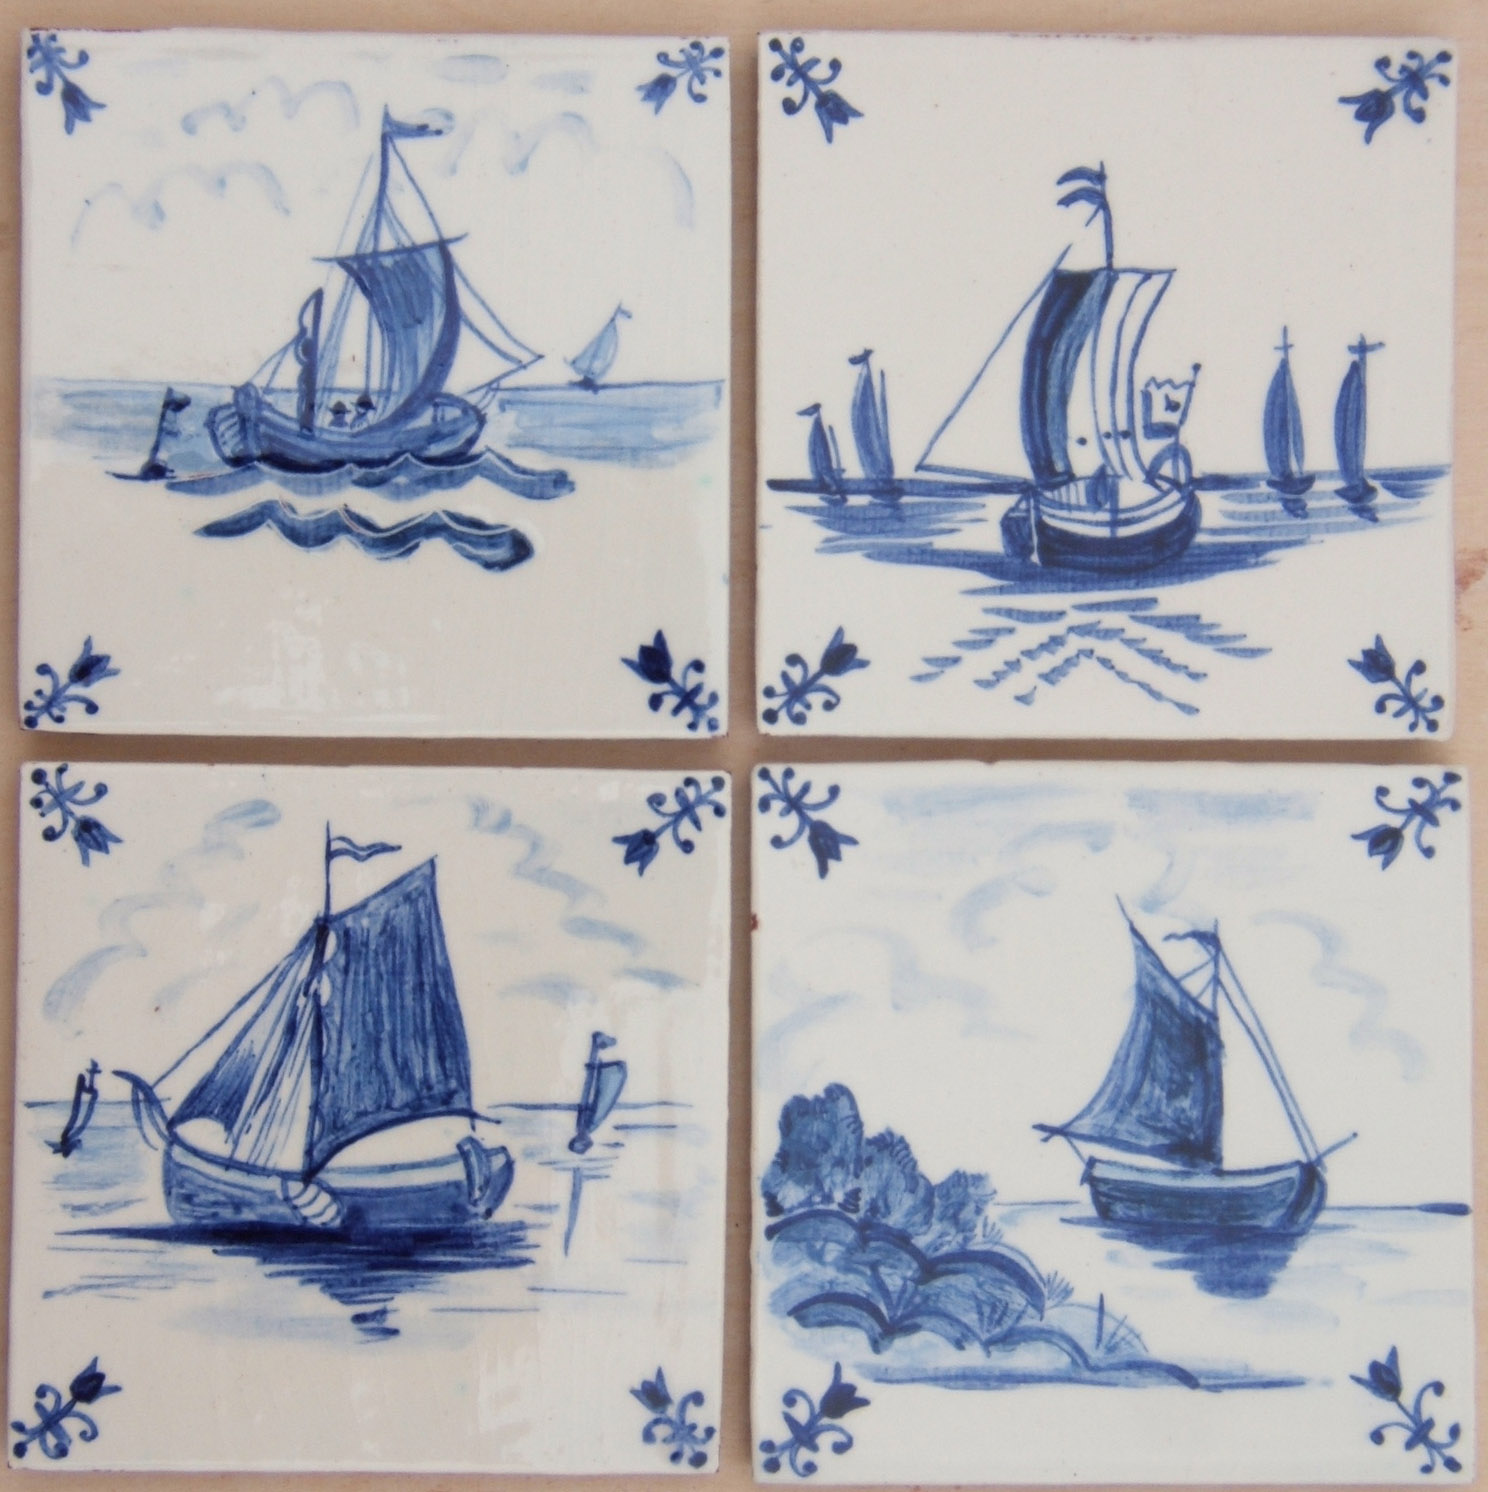 Delft Inspired - The Dutch style of decoration inspired by Chinese ceramics, developed in the towns of Delft and Makkum, is our starting point, not something we slavishly copy.